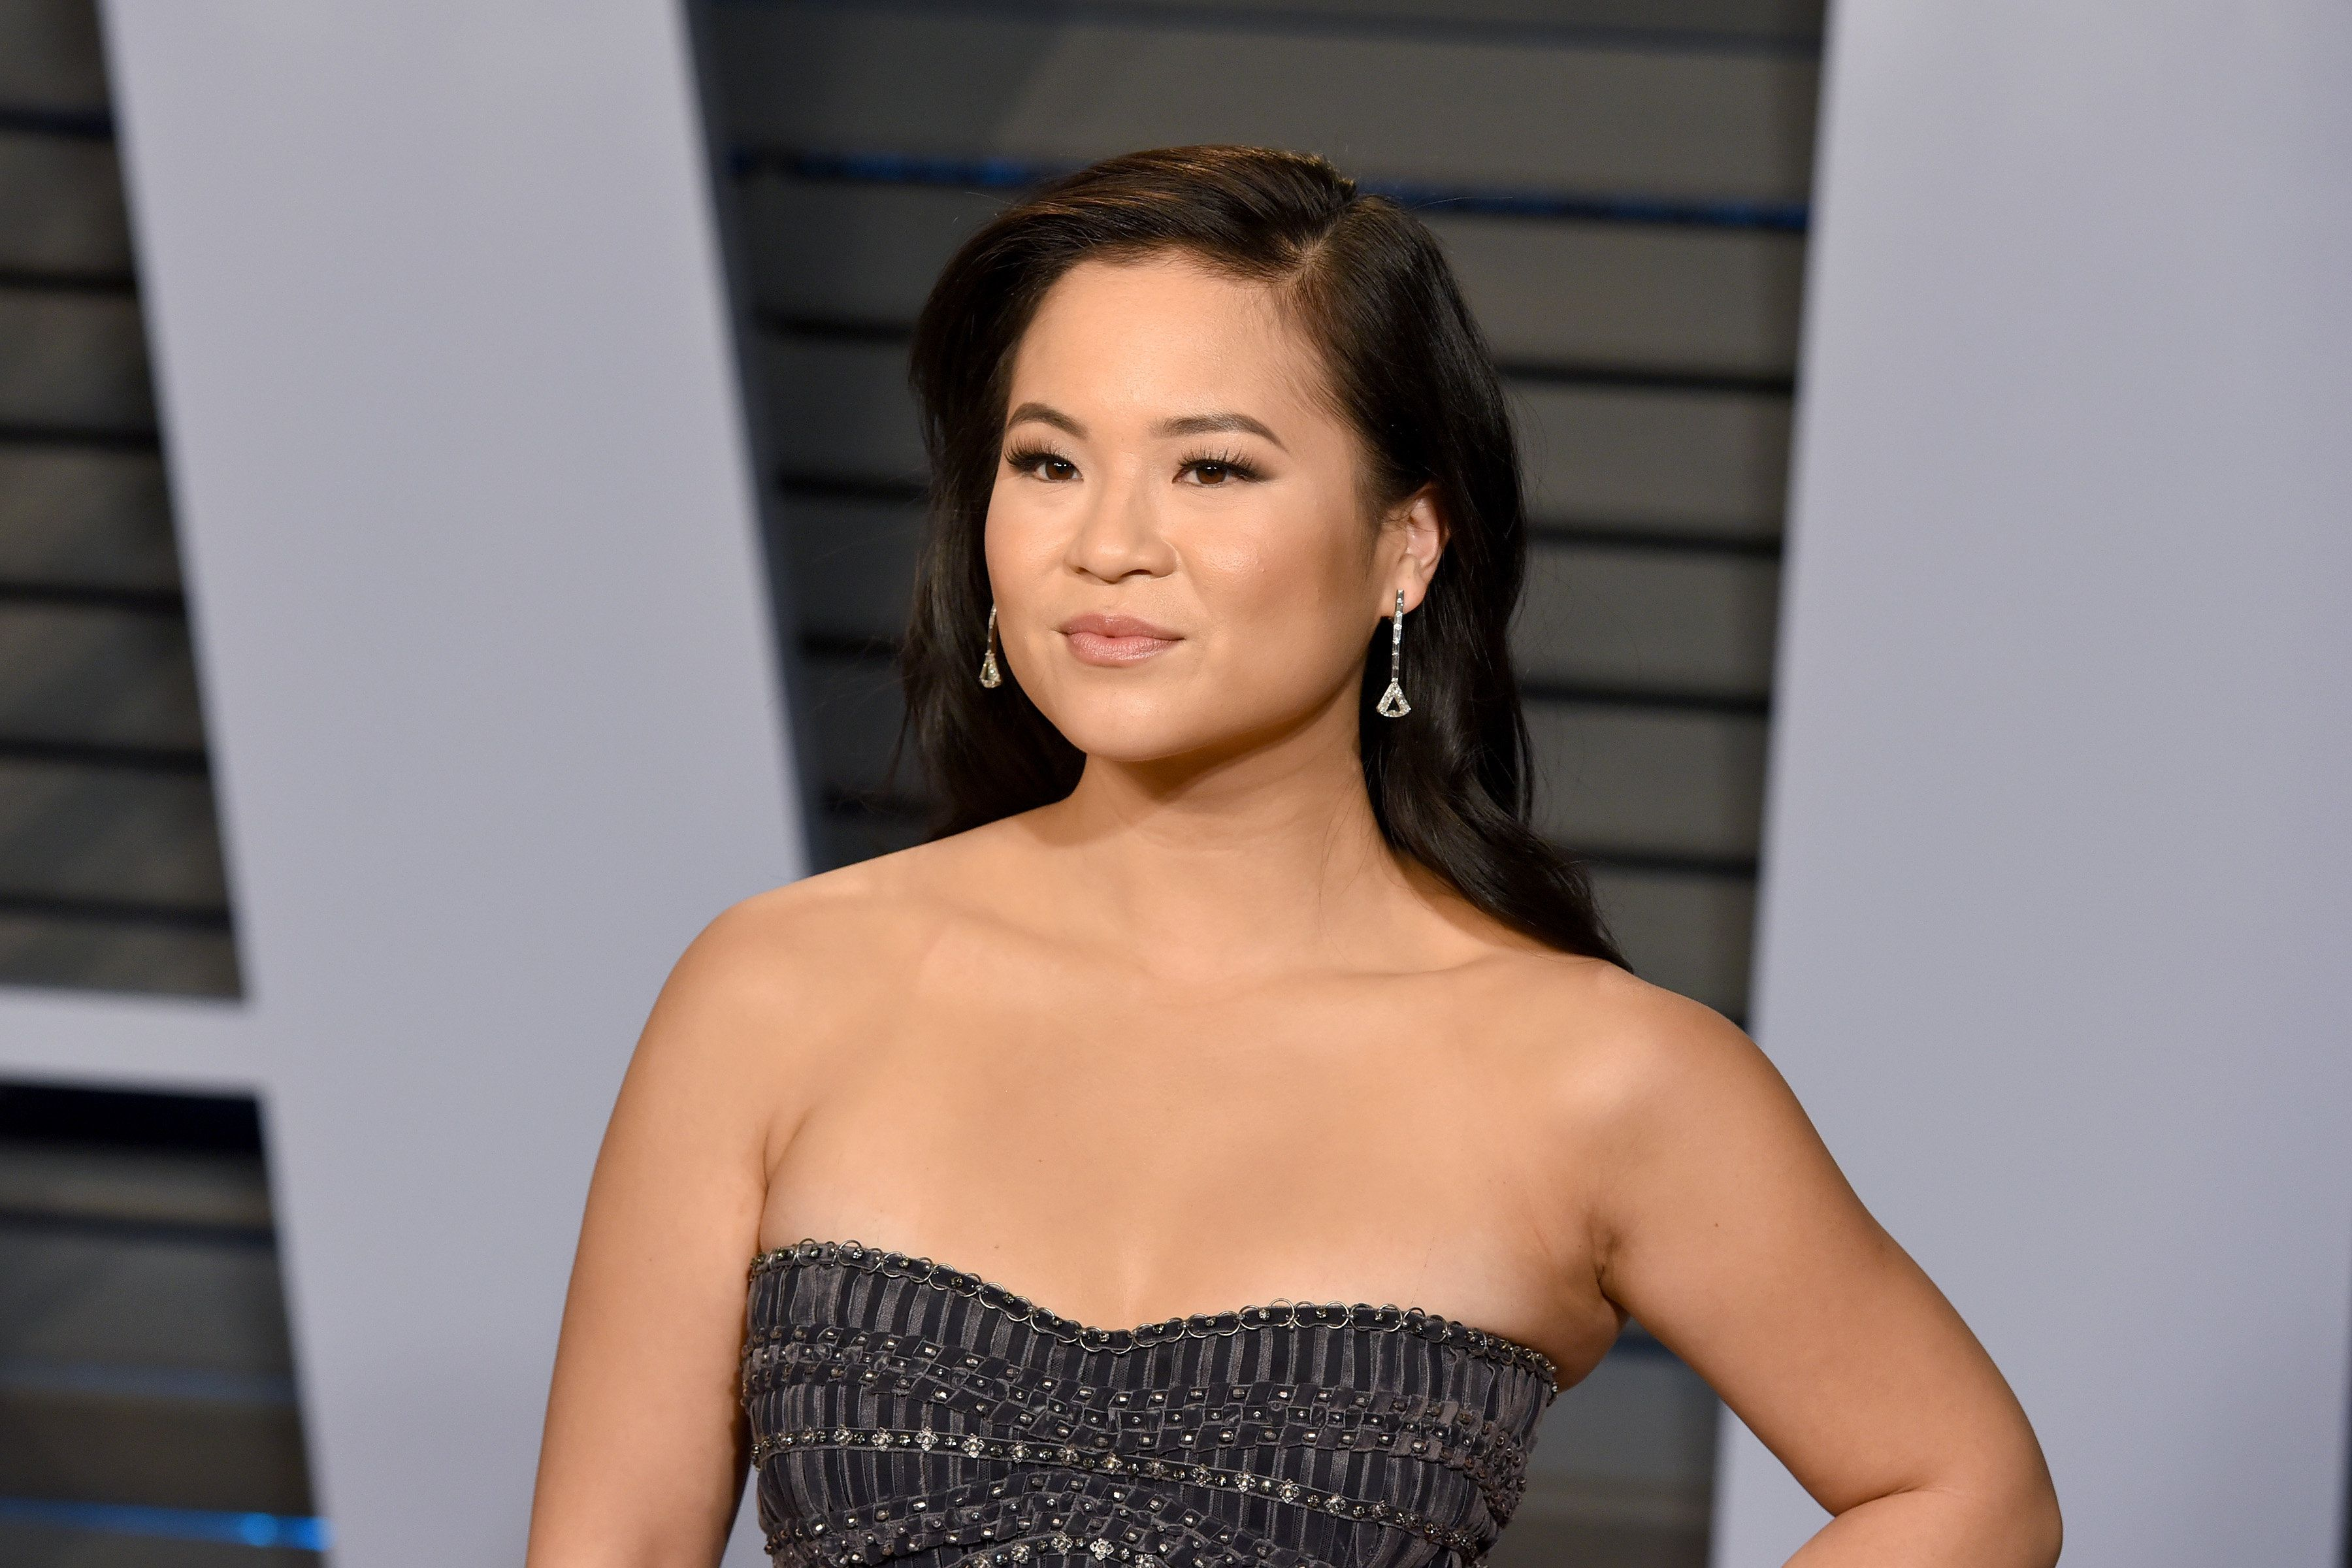 BEVERLY HILLS, CA - MARCH 04:  Kelly Marie Tran attends the 2018 Vanity Fair Oscar Party Hosted By Radhika Jones - Arrivals at Wallis Annenberg Center for the Performing Arts on March 4, 2018 in Beverly Hills, CA.  (Photo by Presley Ann/Patrick McMullan via Getty Images)